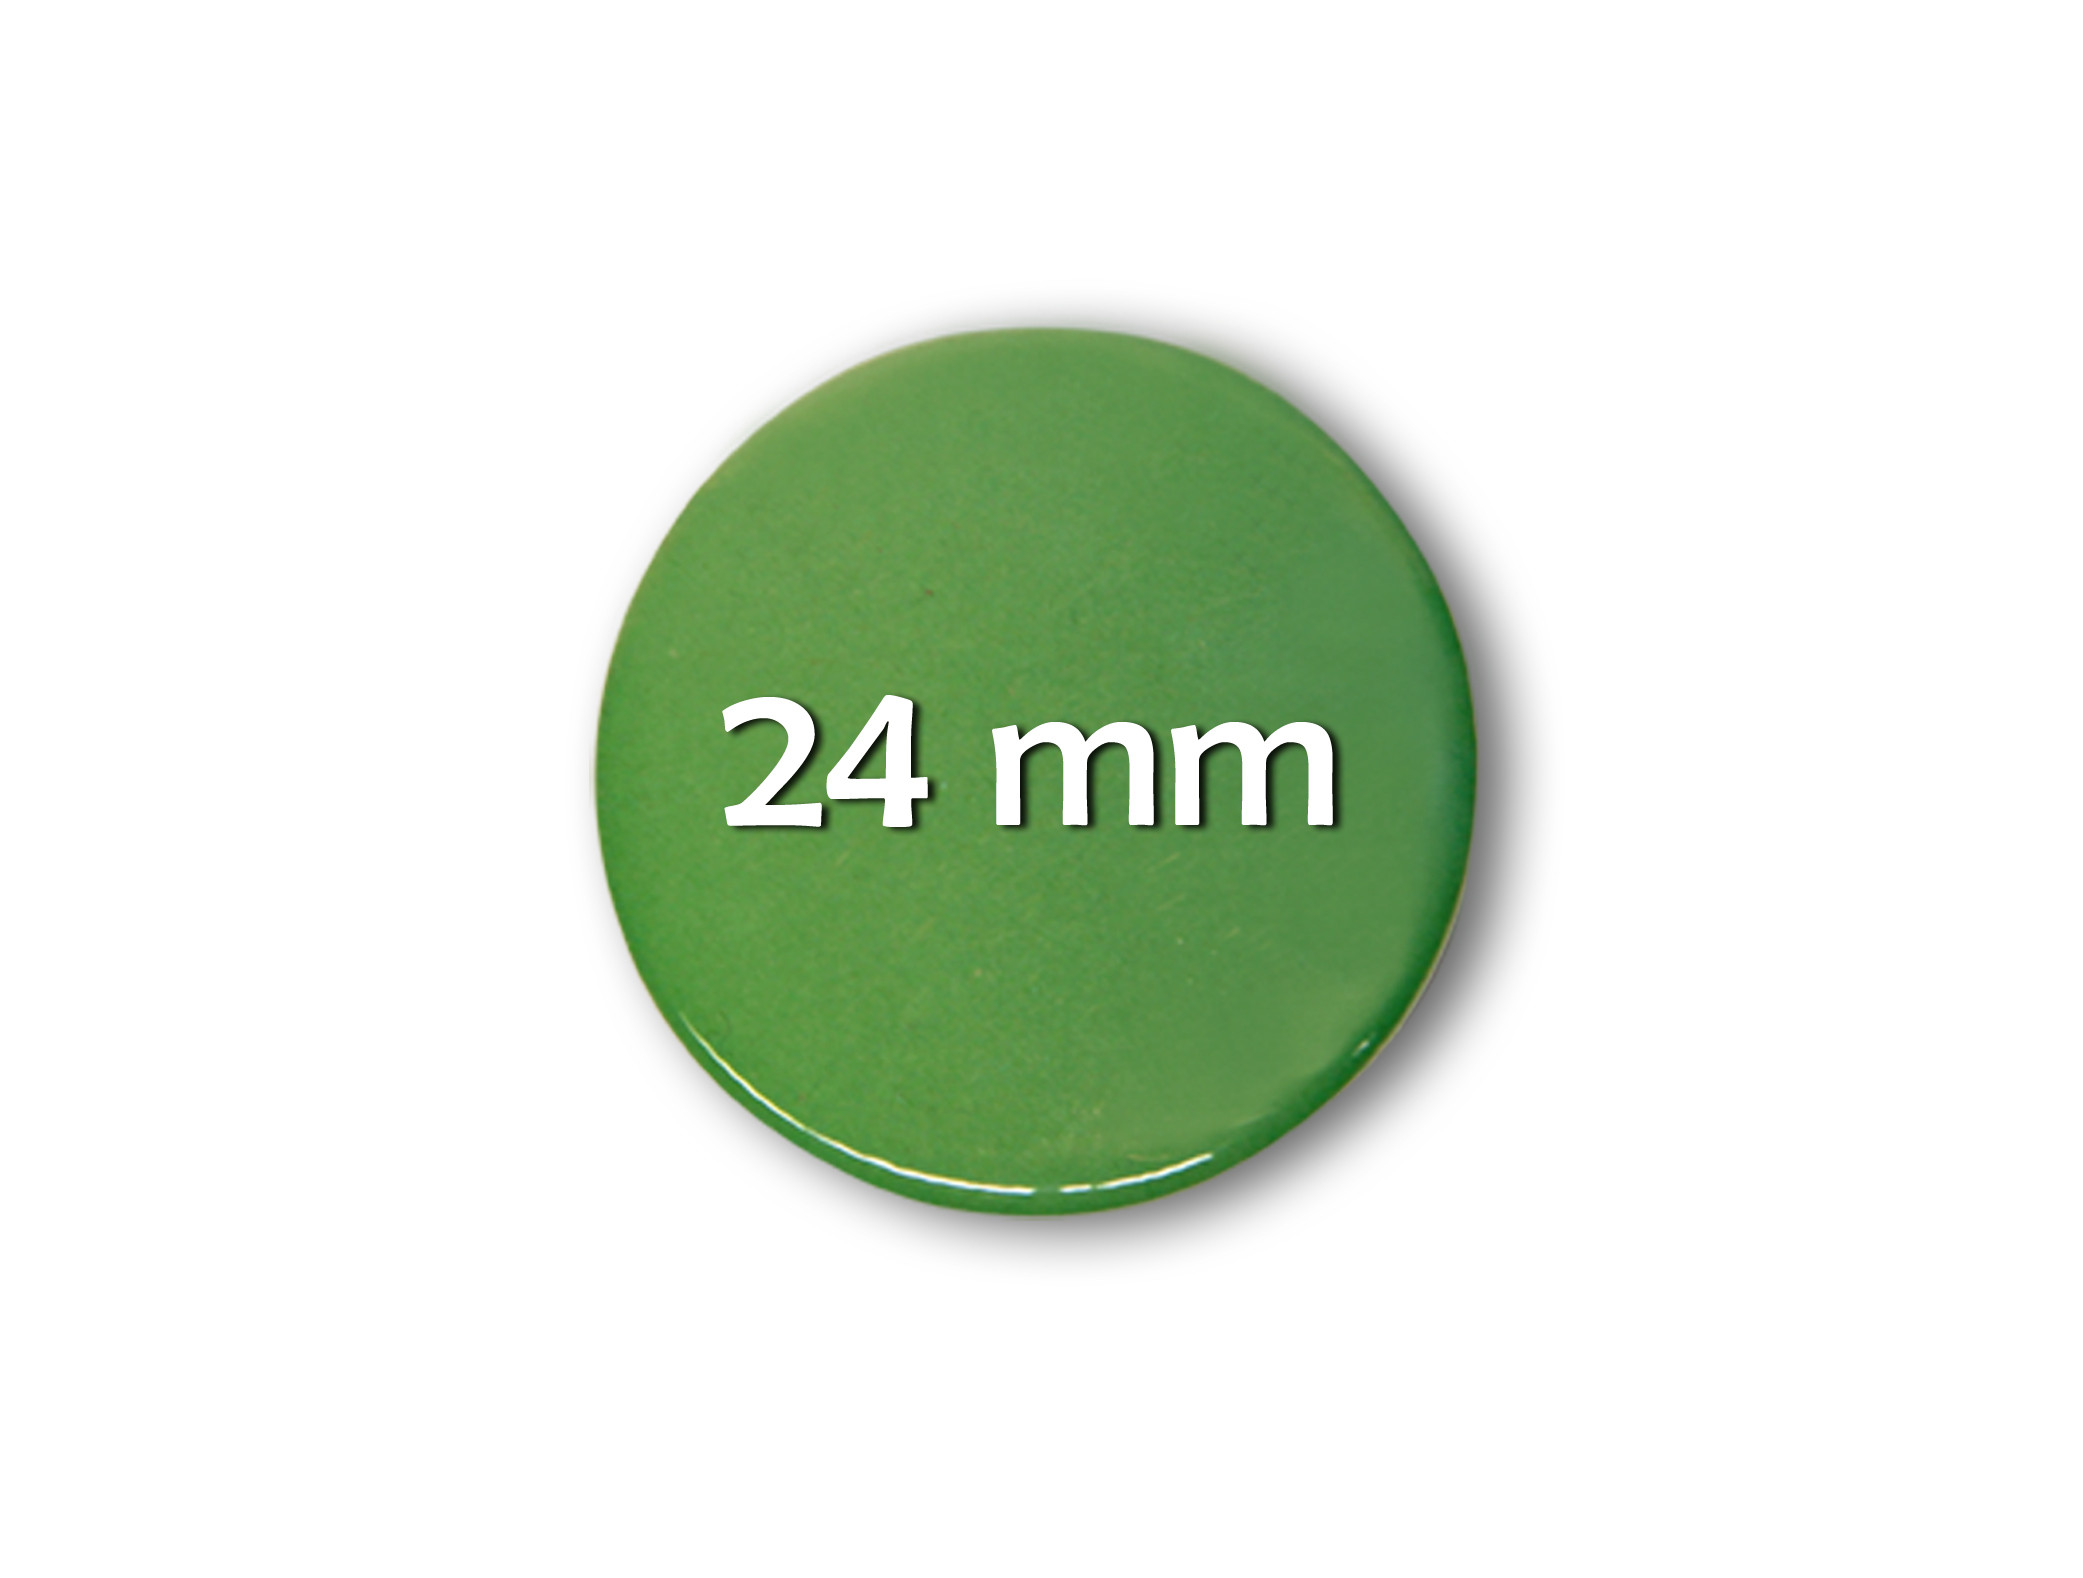 24mm Fertigbutton